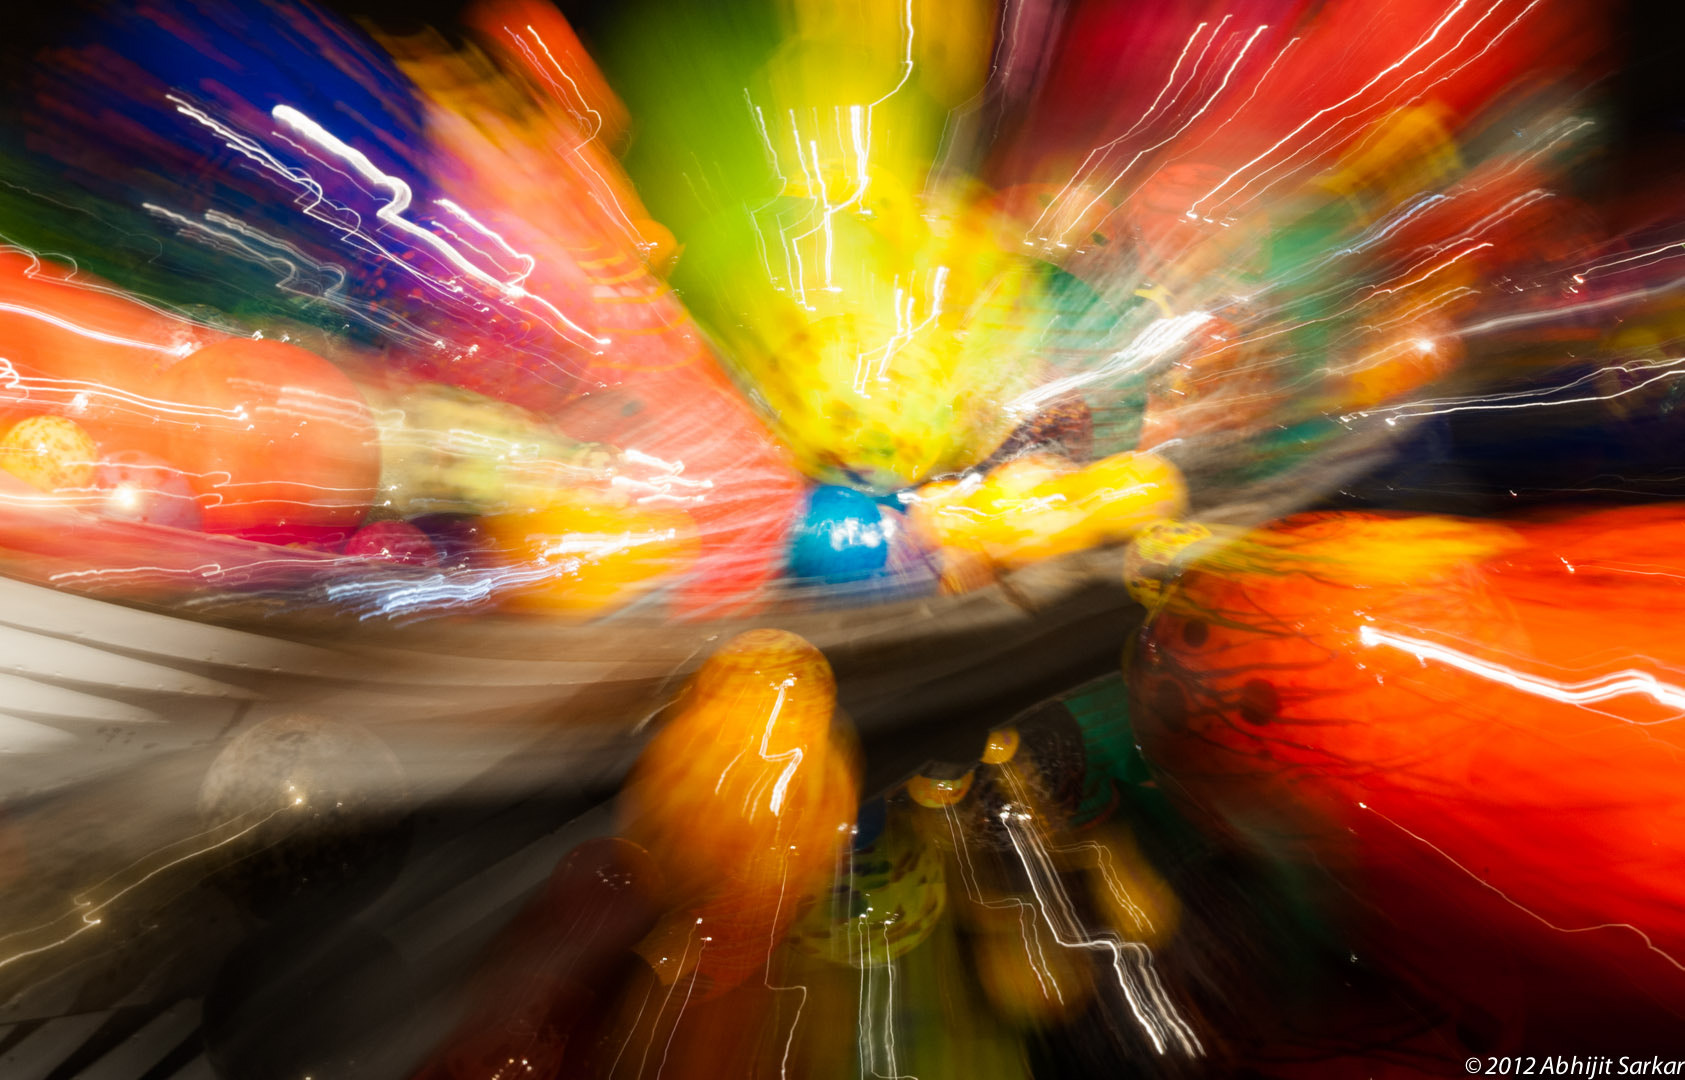 Photograph Explosion of Color by Abhijit Sarkar on 500px